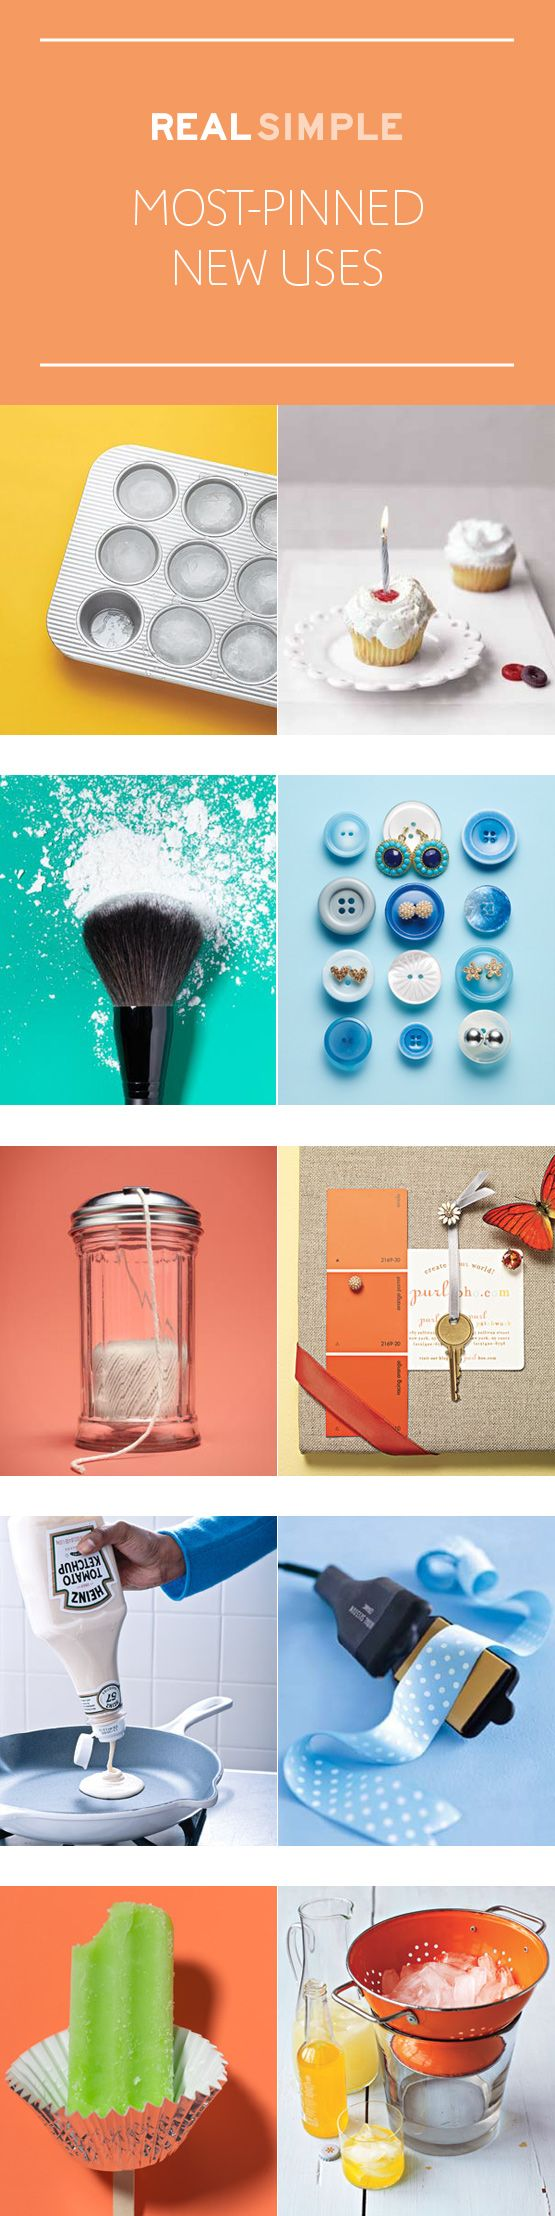 The most popular New Uses for Old Things on Pinterest from Real Simple.